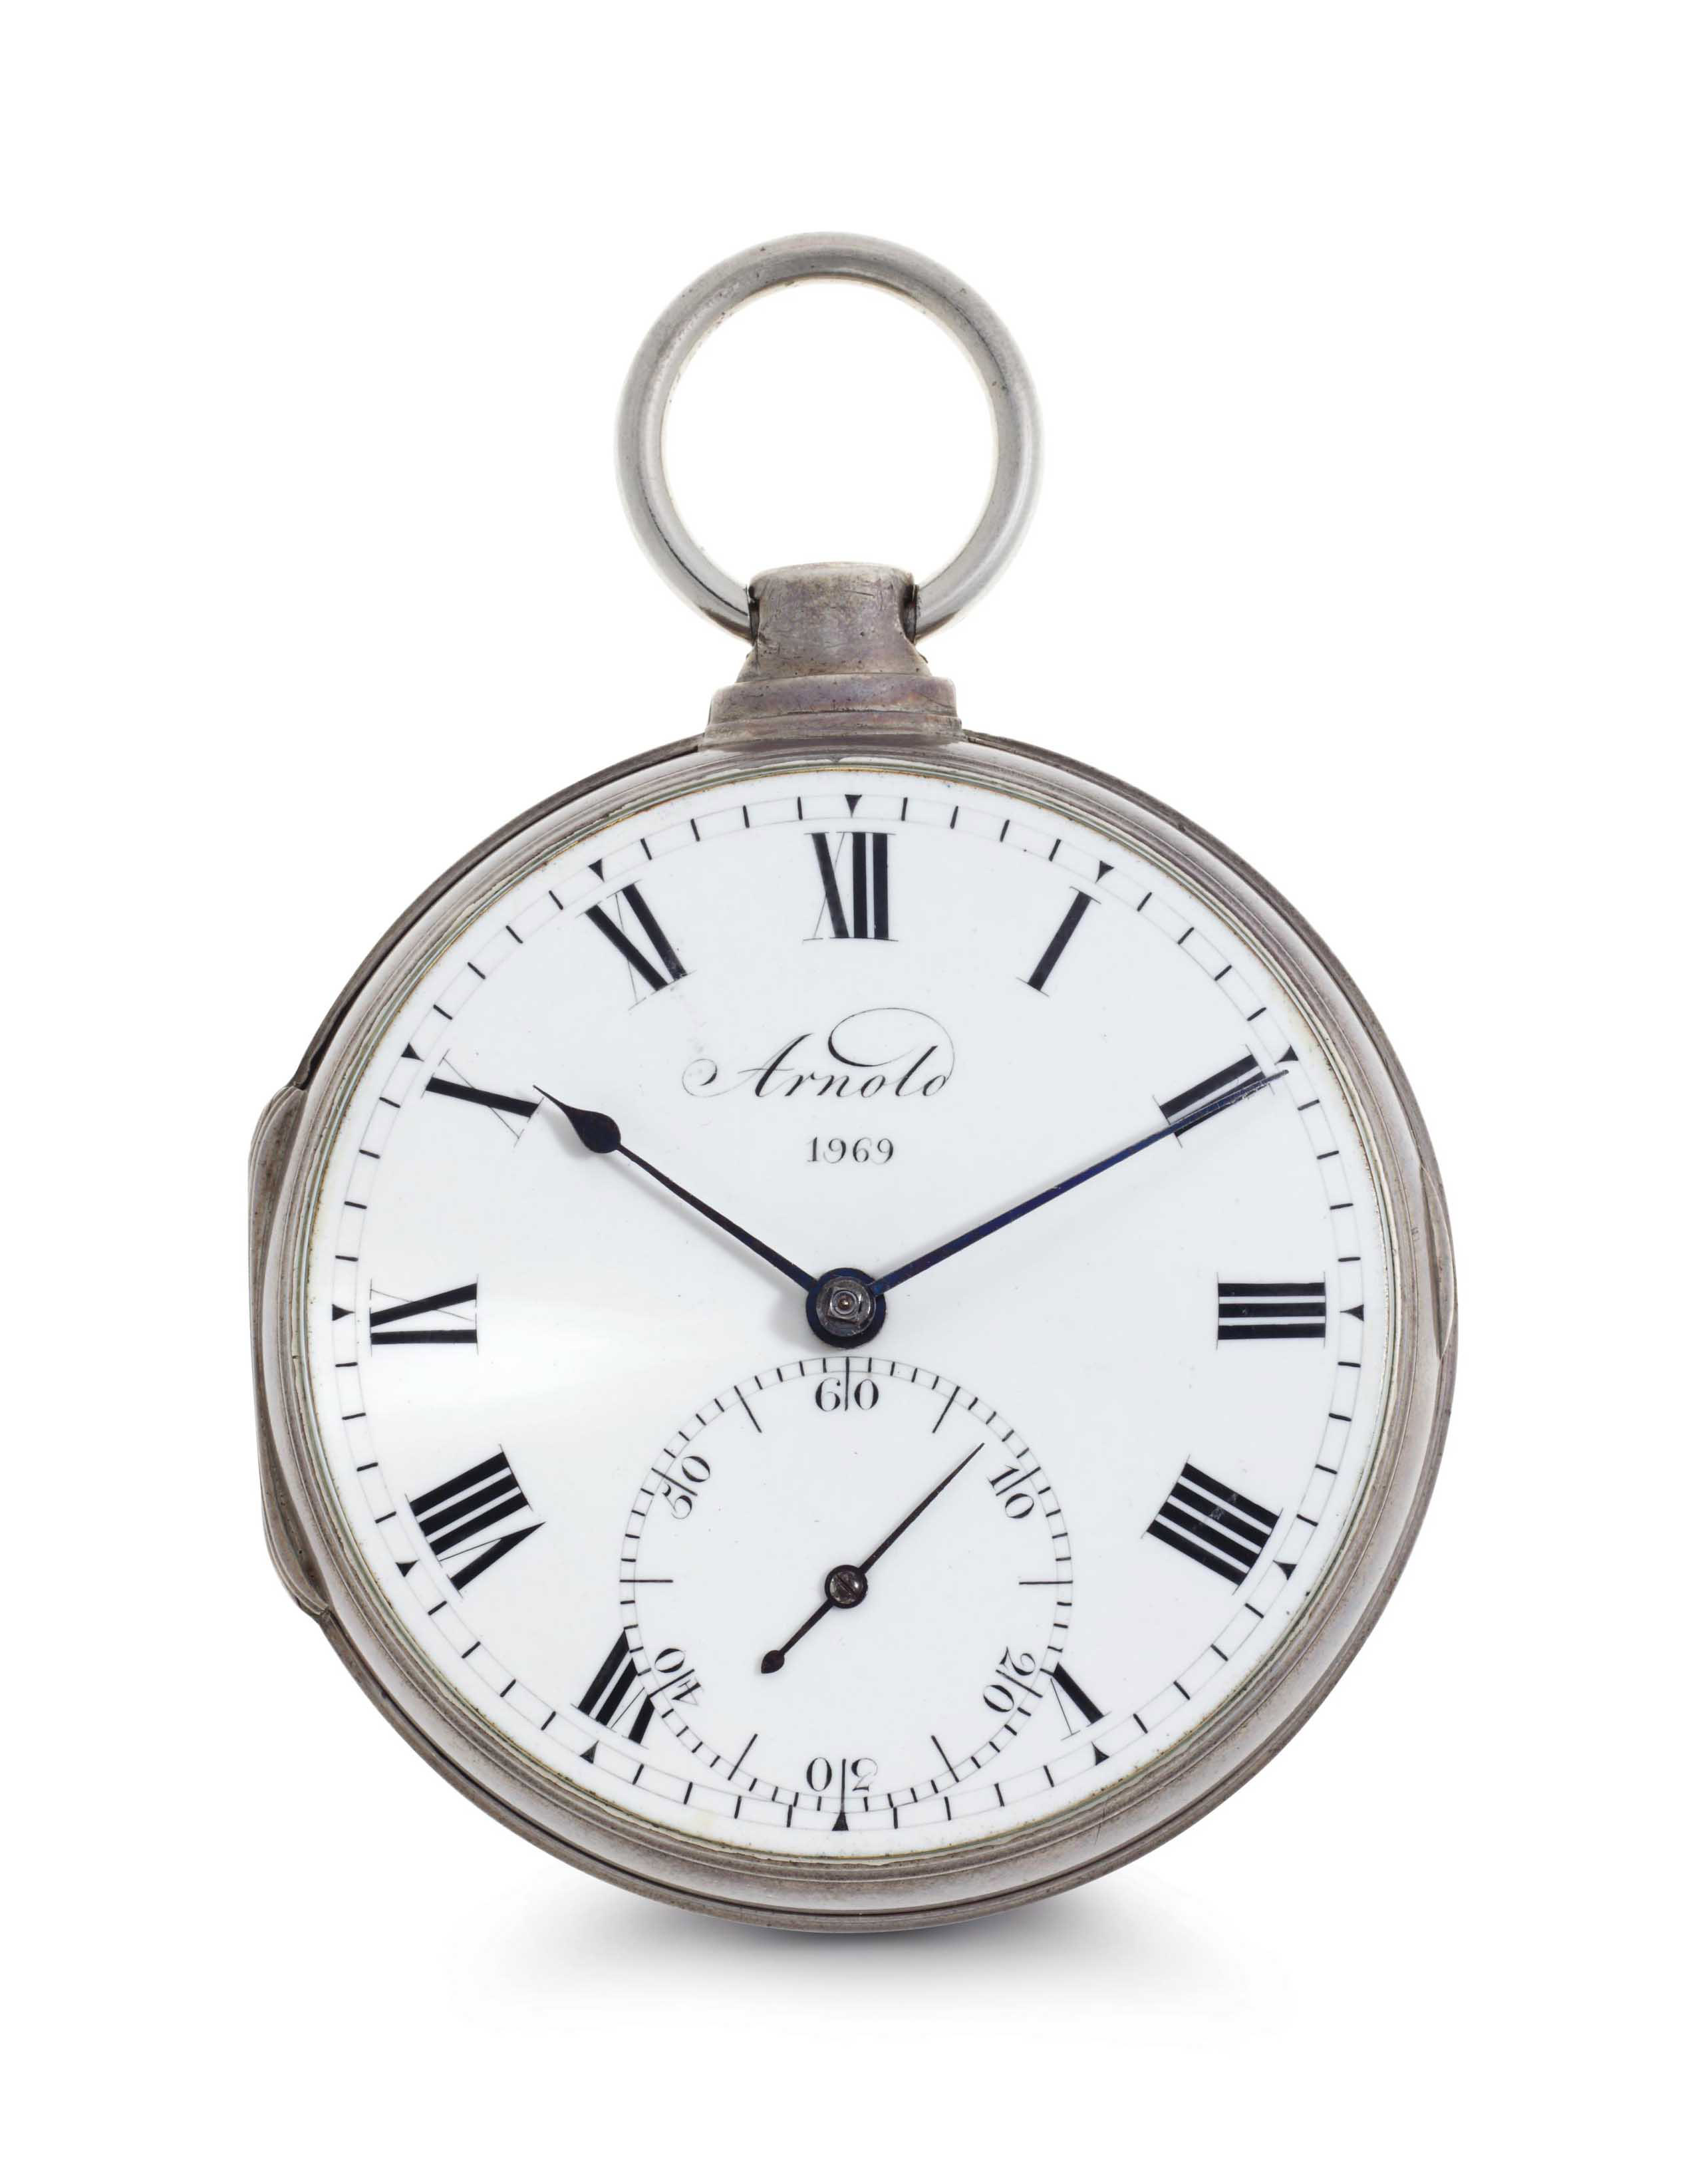 John Roger Arnold. A Silver Openface Key Wound Chronometer Watch With Z Balance